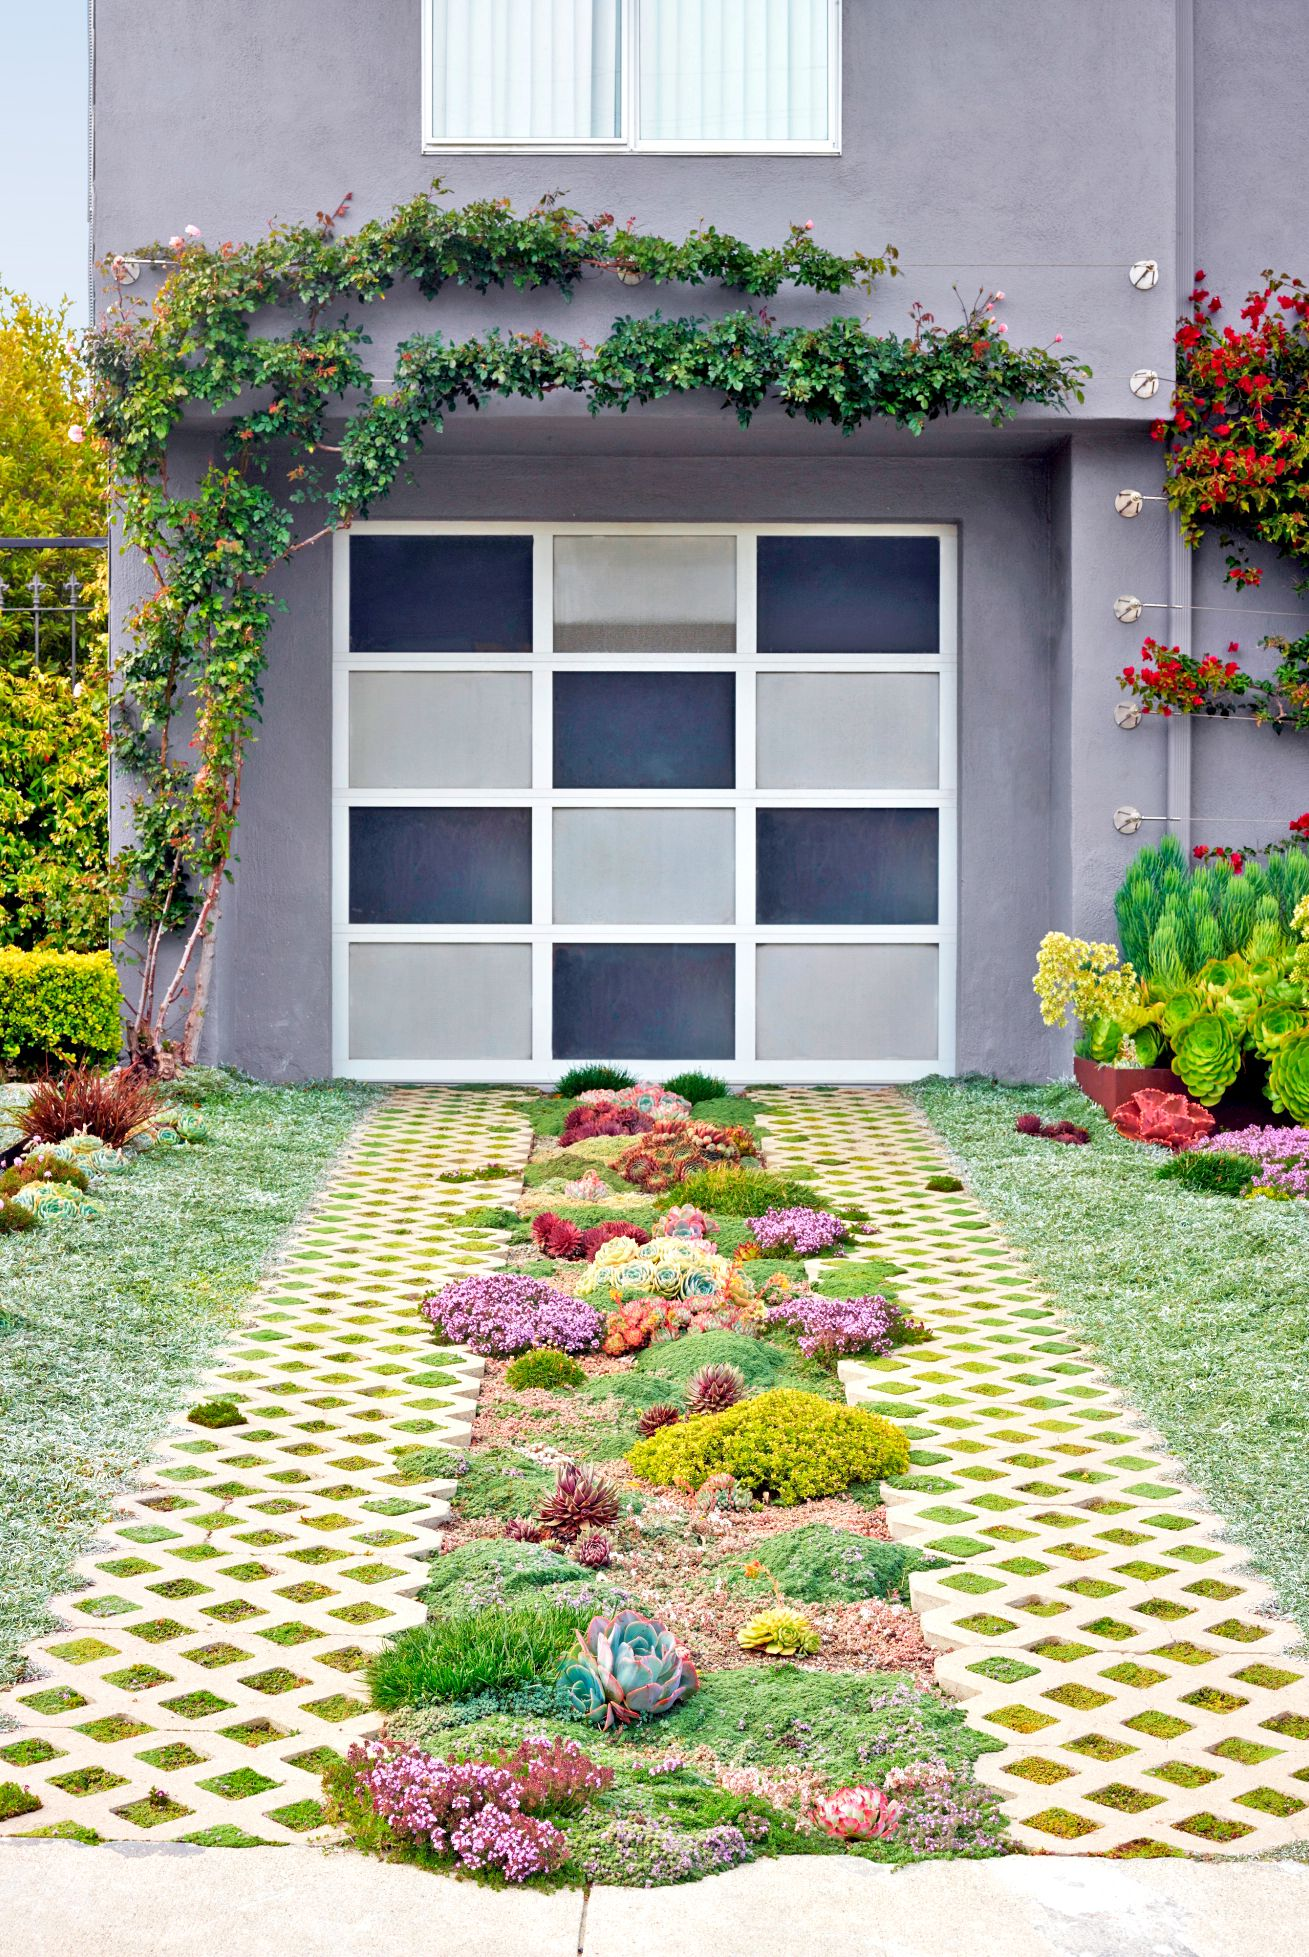 Driveway Gardens Are Totally Trending, and We're Here for It